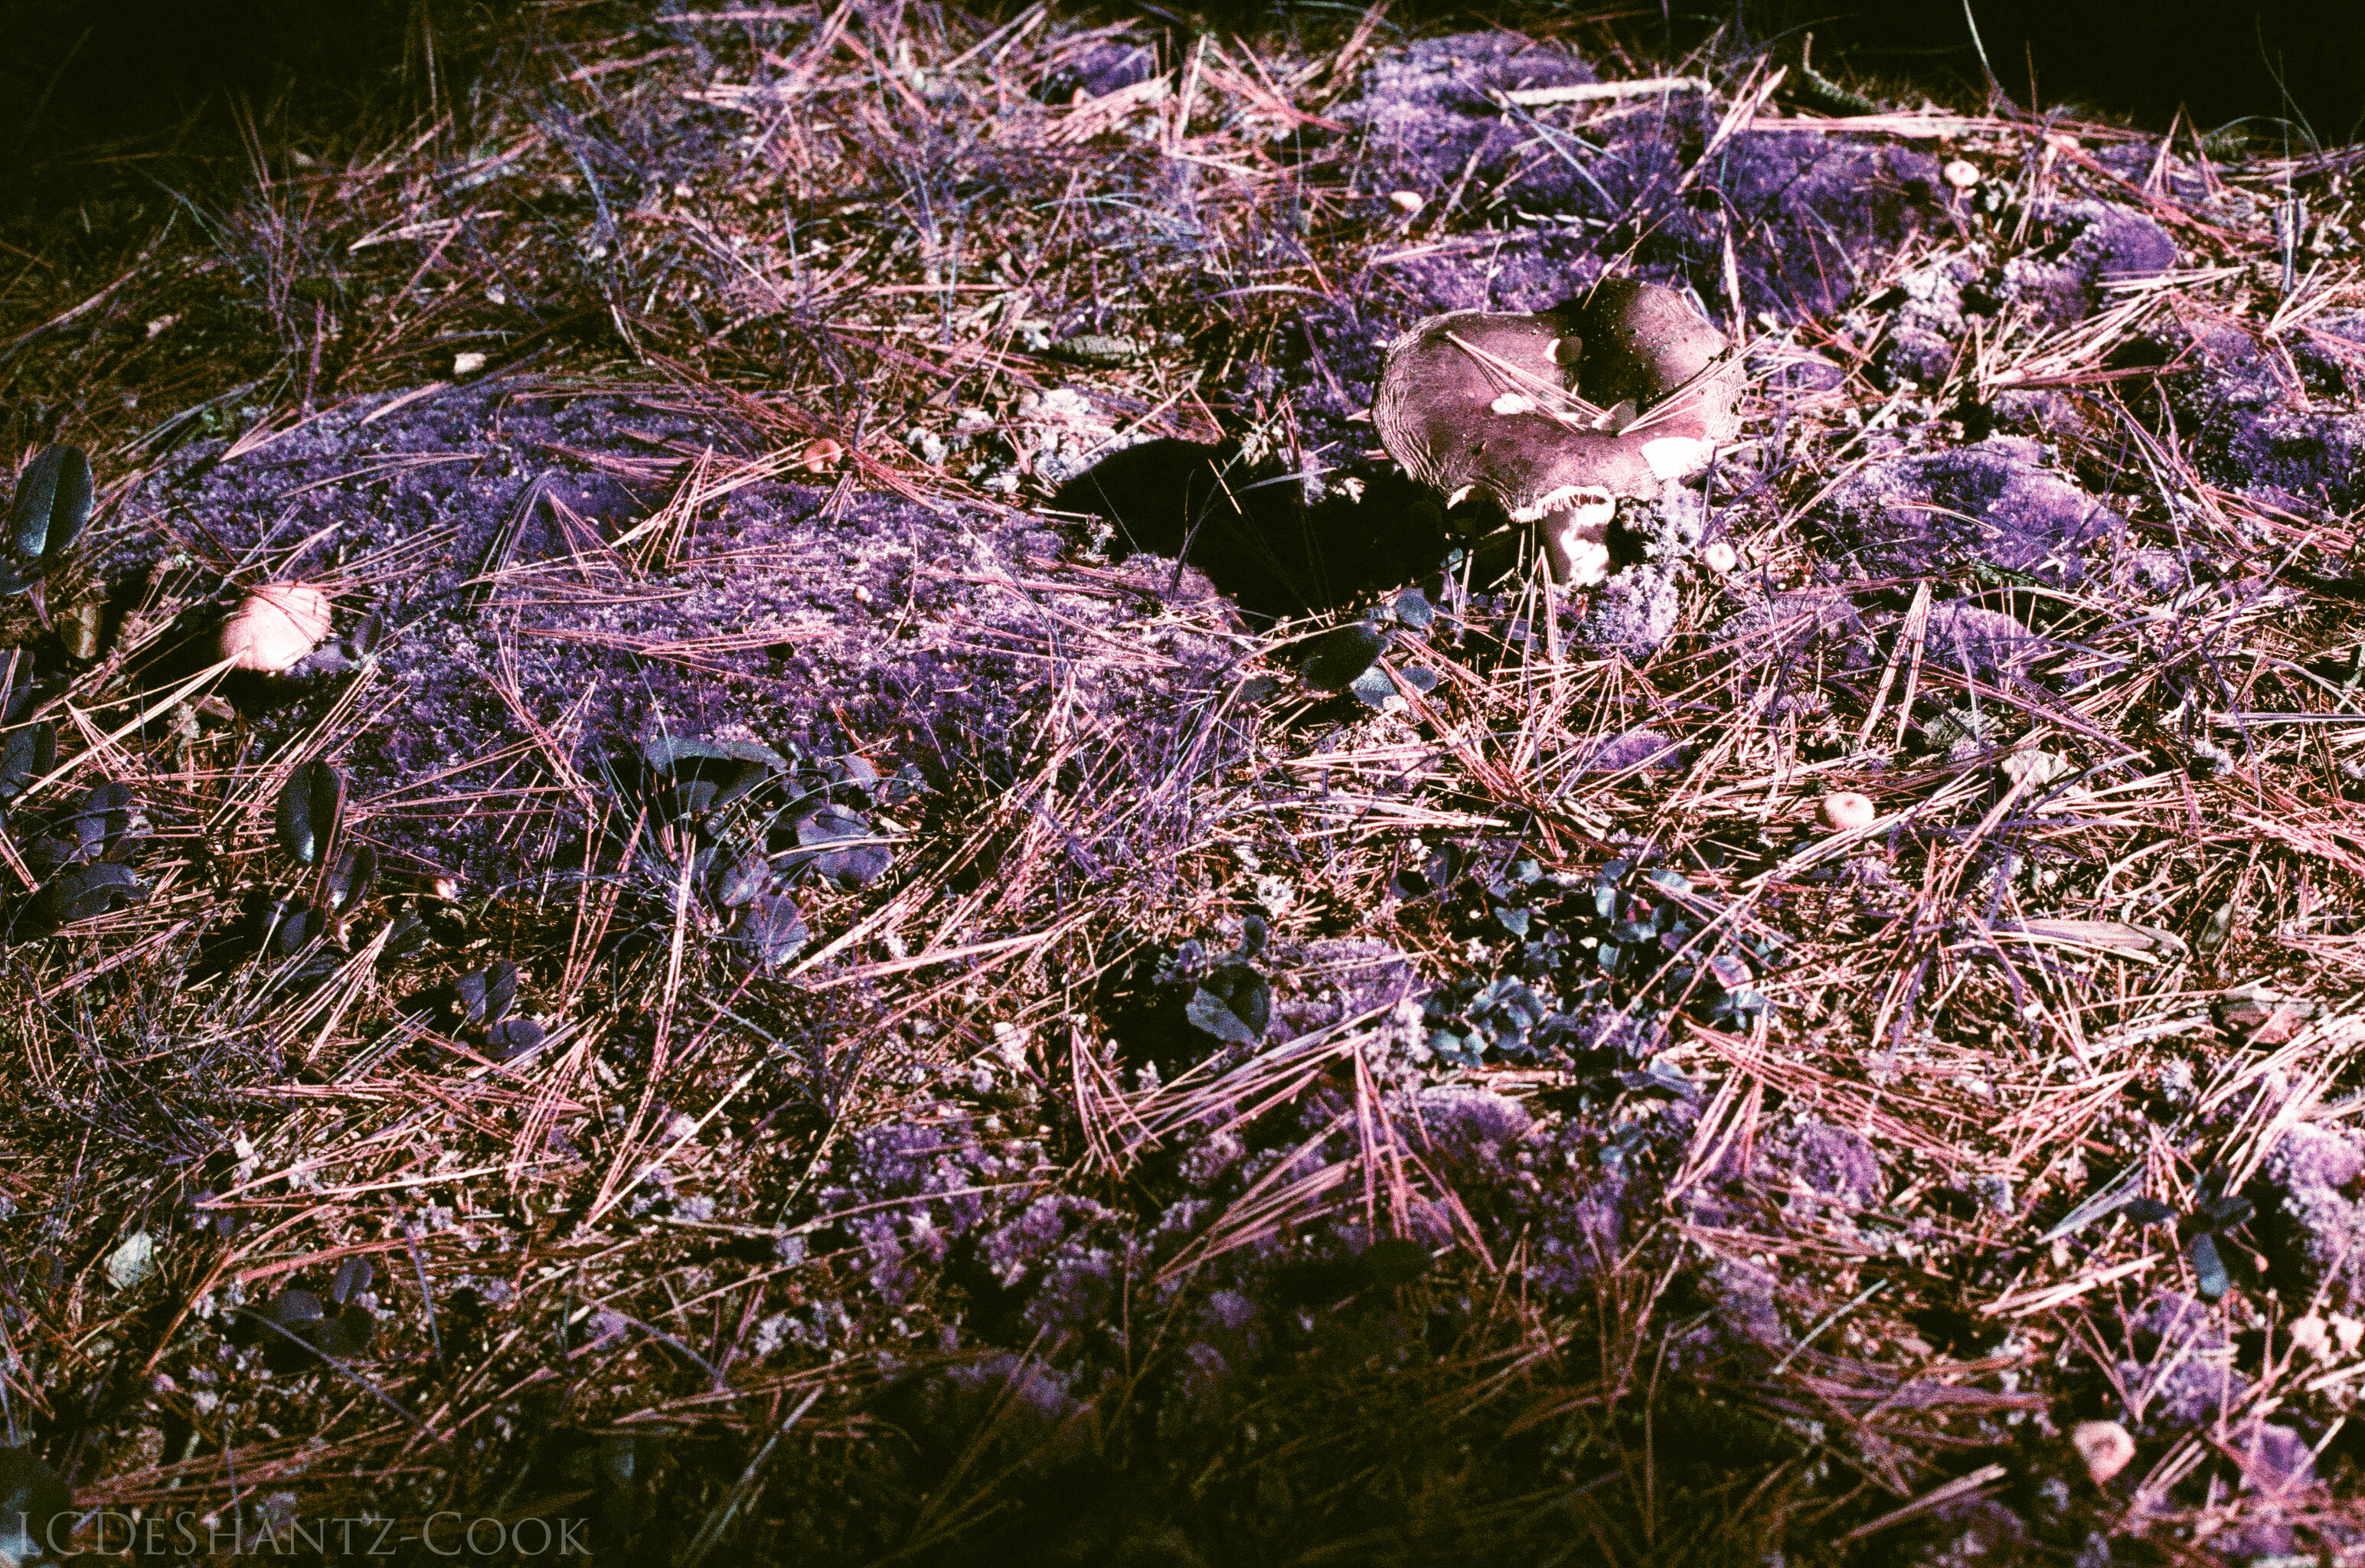 ldc_20161026_77800016srt102_lomo_purple_200